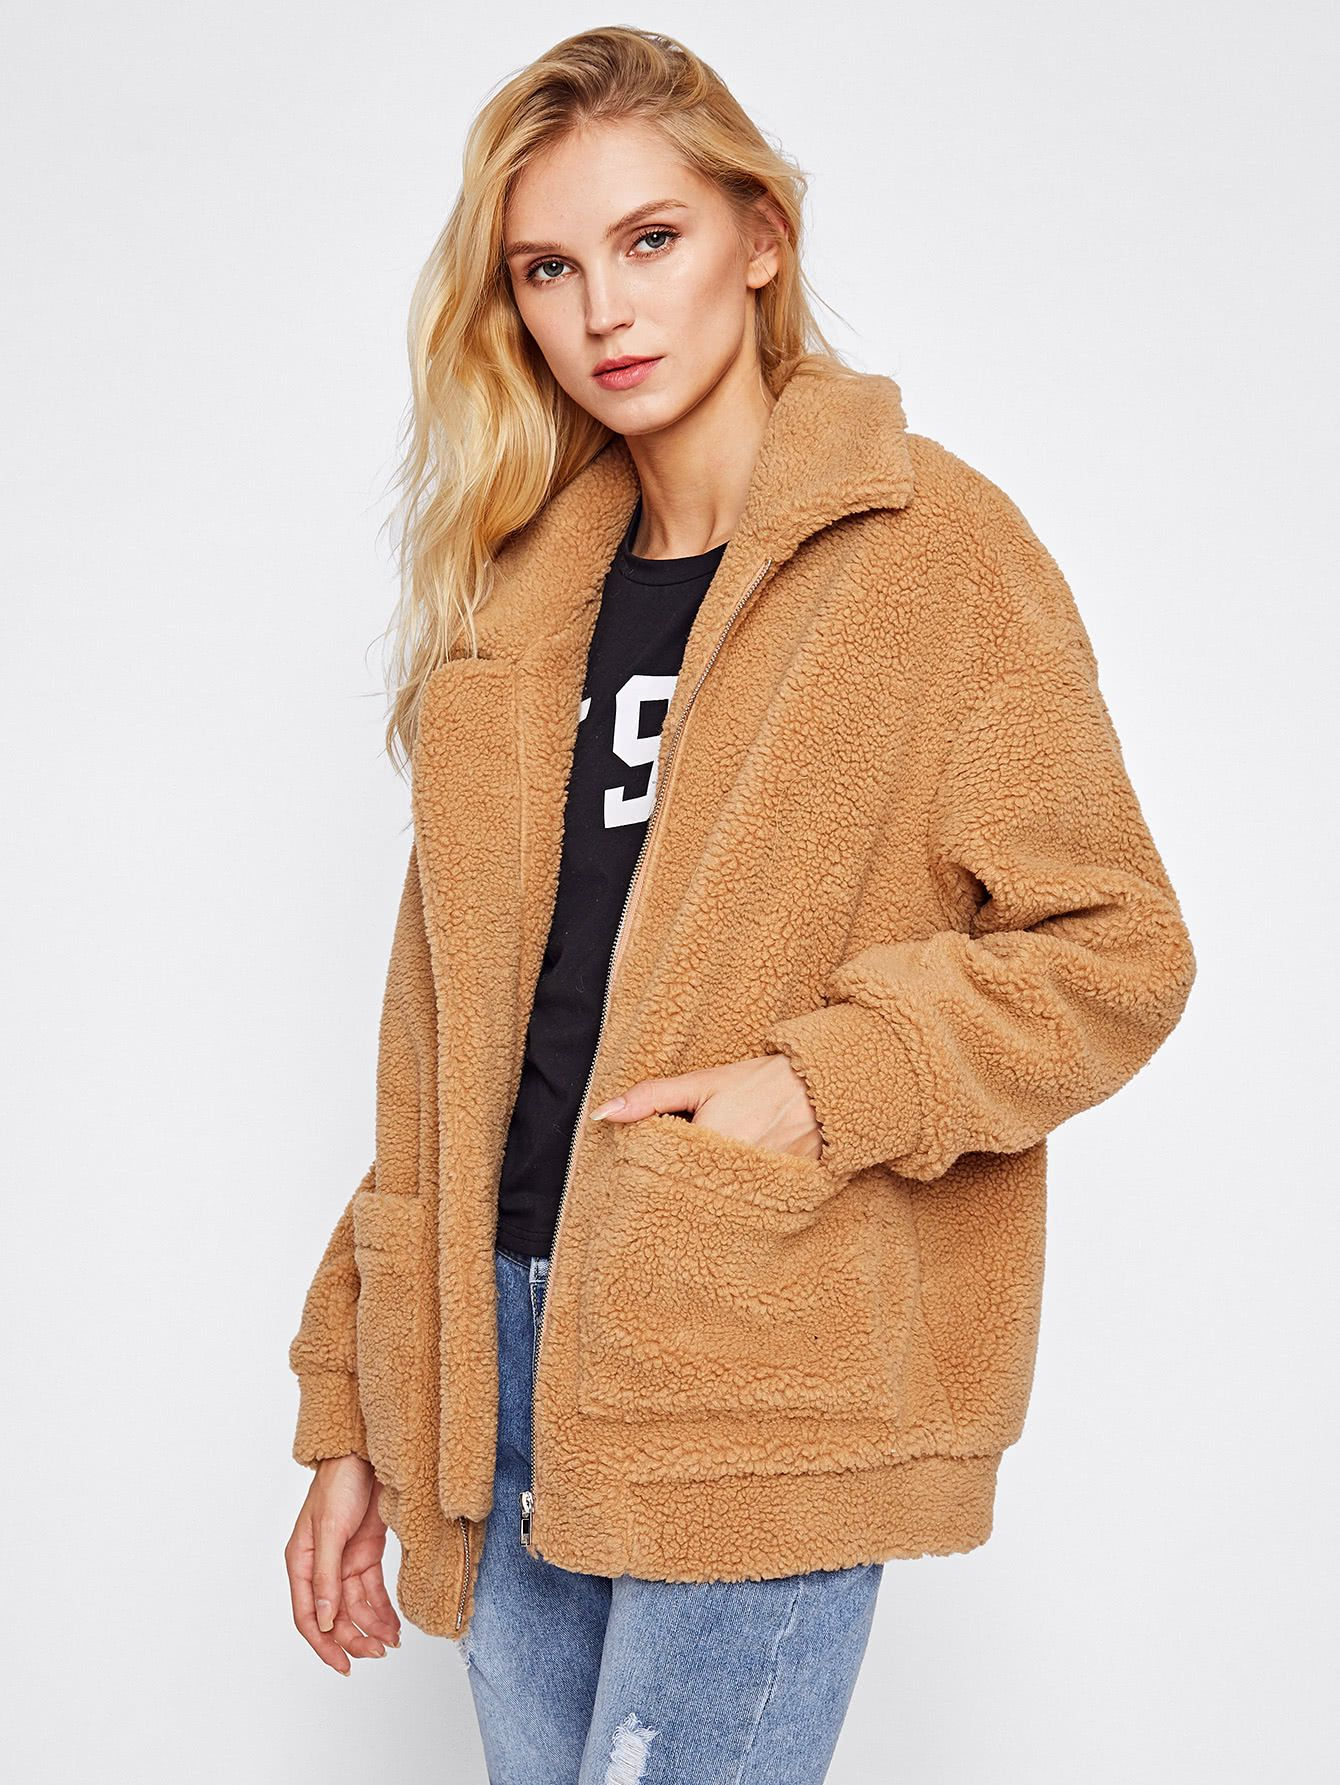 ef826cbe24 Shop Drop Shoulder Oversized Fleece Jacket online. SheIn offers Drop  Shoulder Oversized Fleece Jacket & more to fit your fashionable needs.